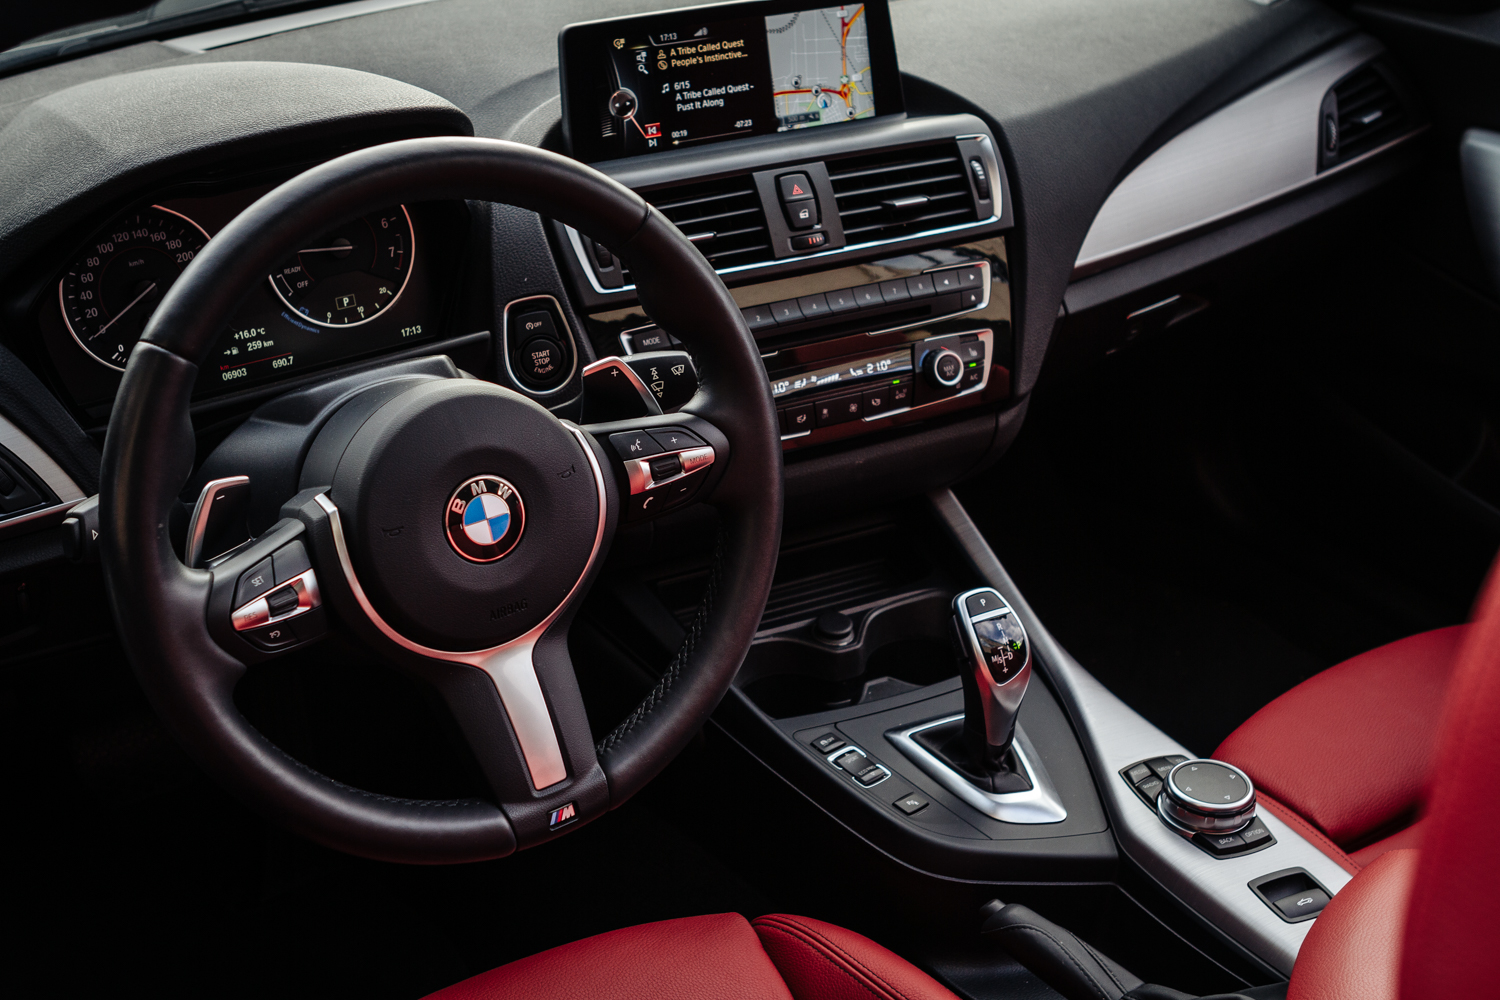 The 2015 bmw 228i xdrive combines all the great things the german luxury carmakers does so well and despite its small size it serves as a strong